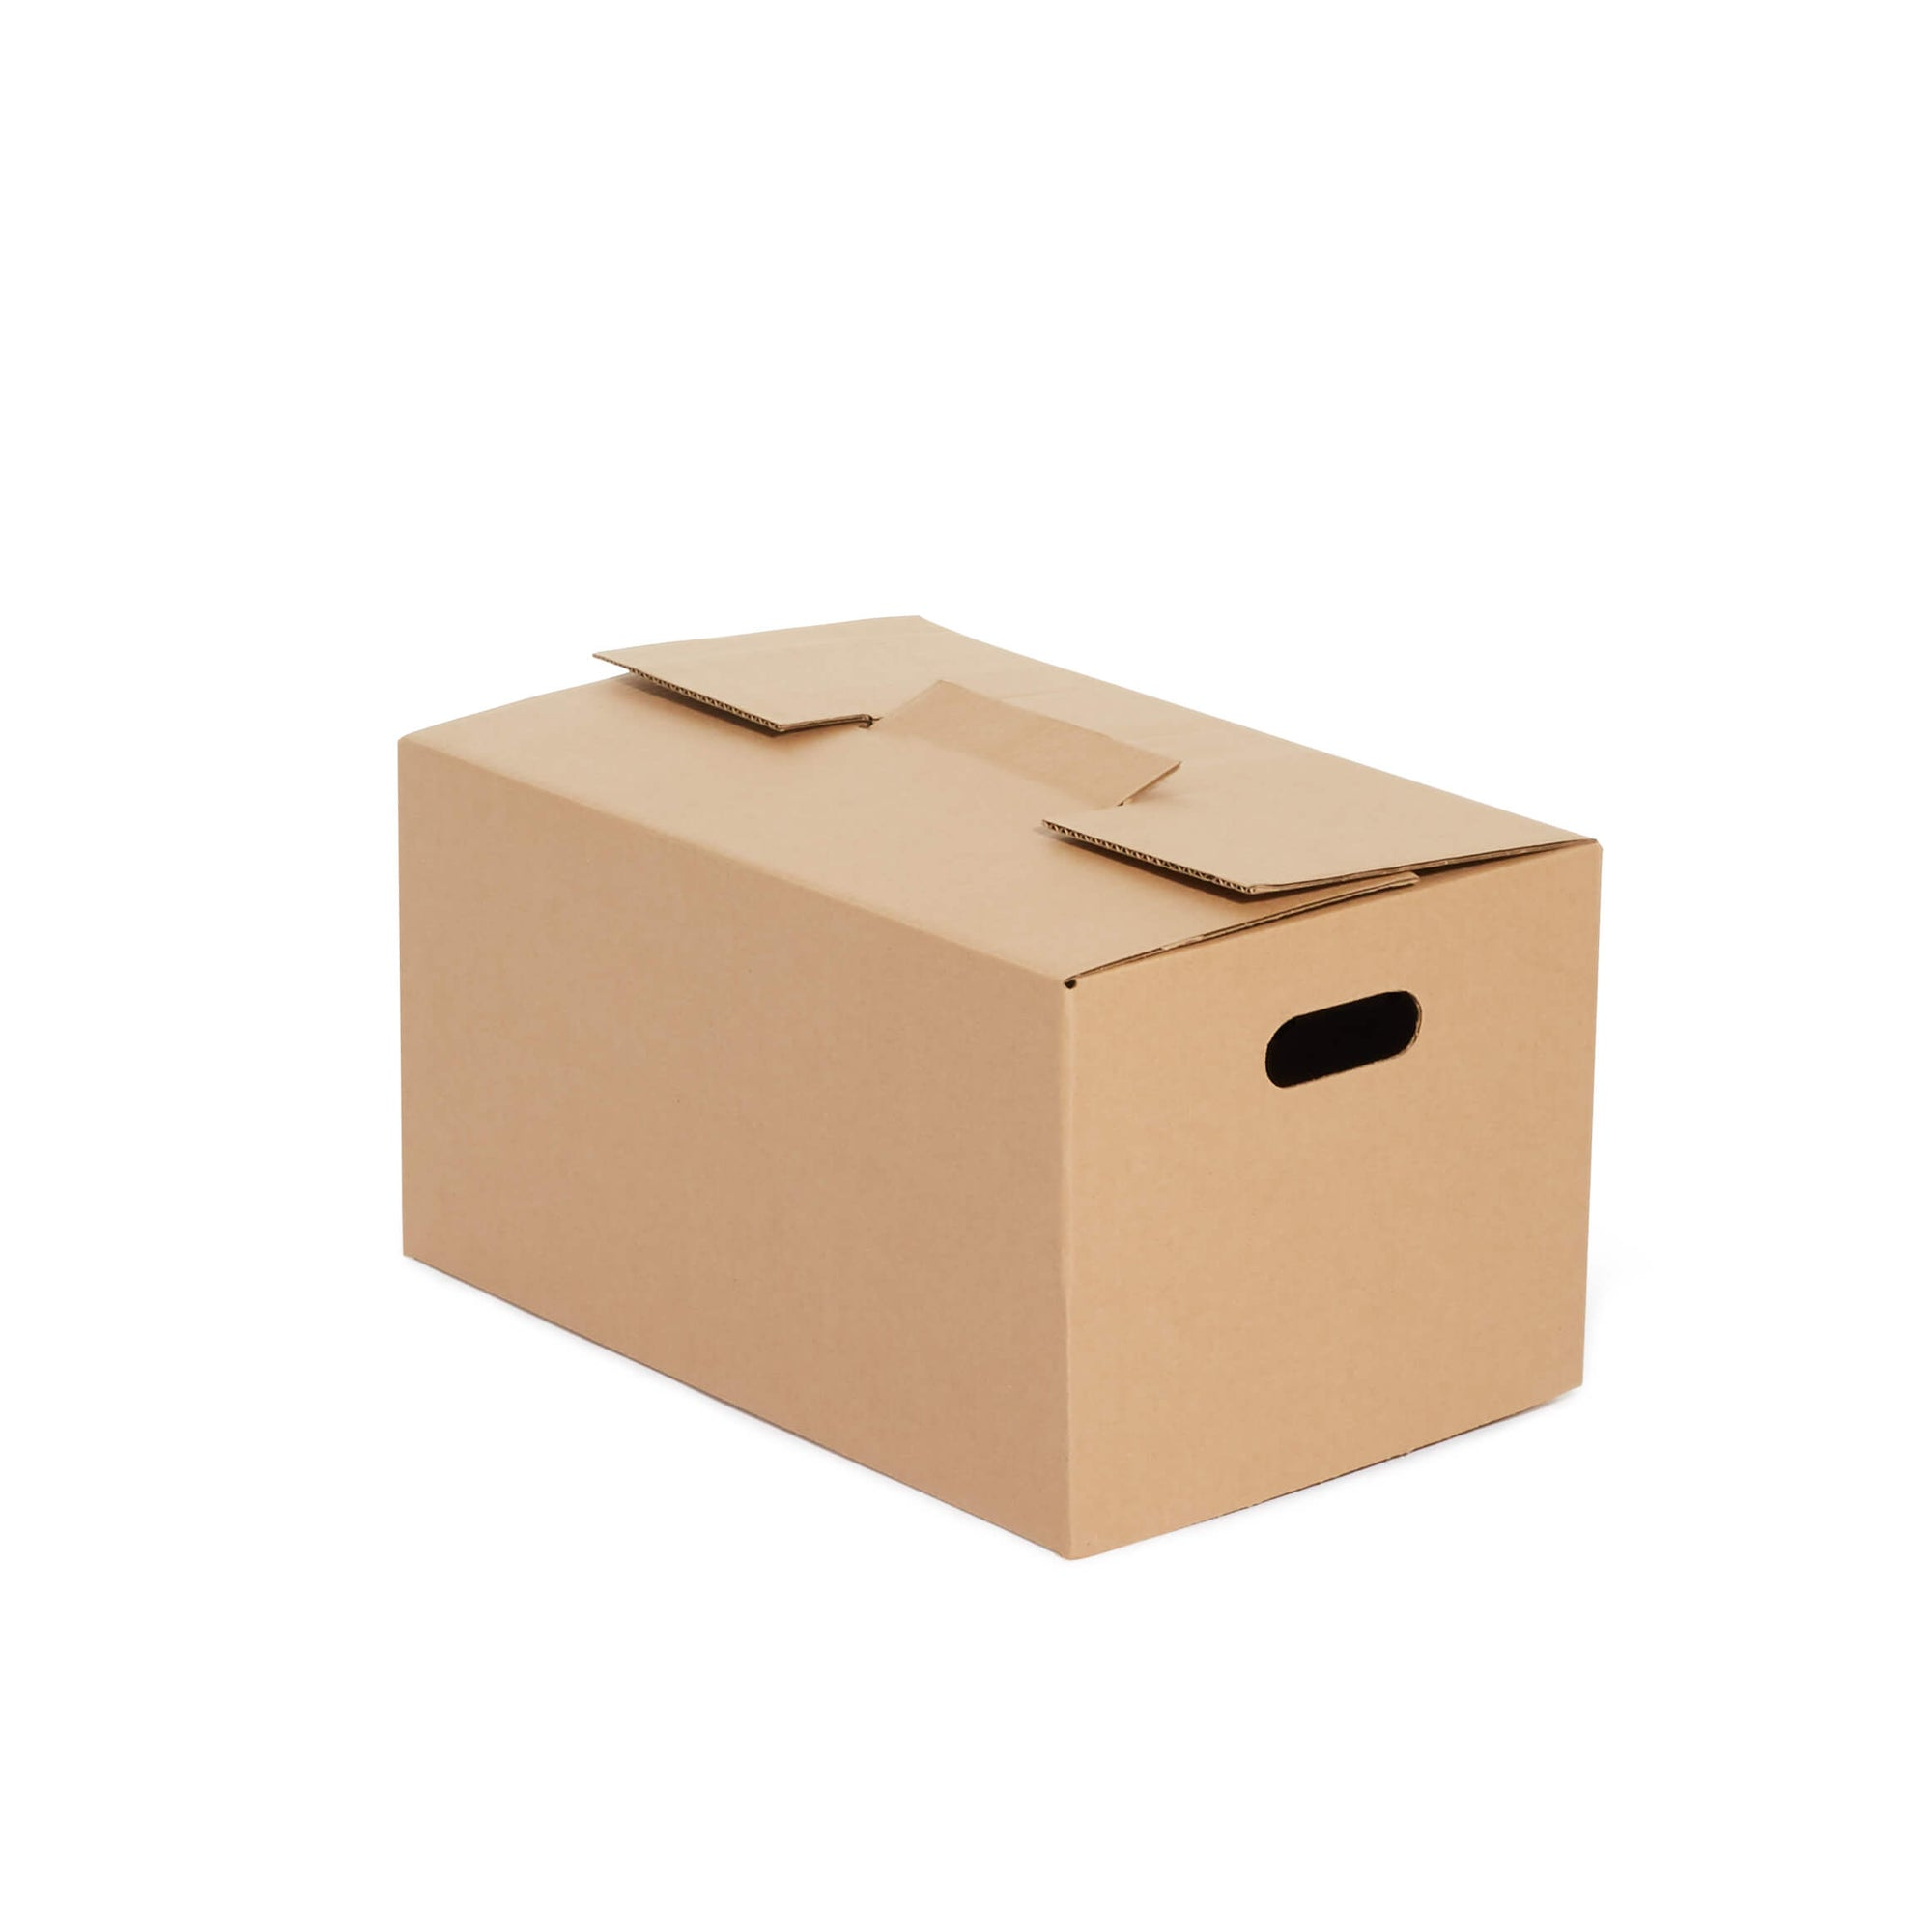 Large File Box Packing R Us Moving Packing Shipping Storing Boxes